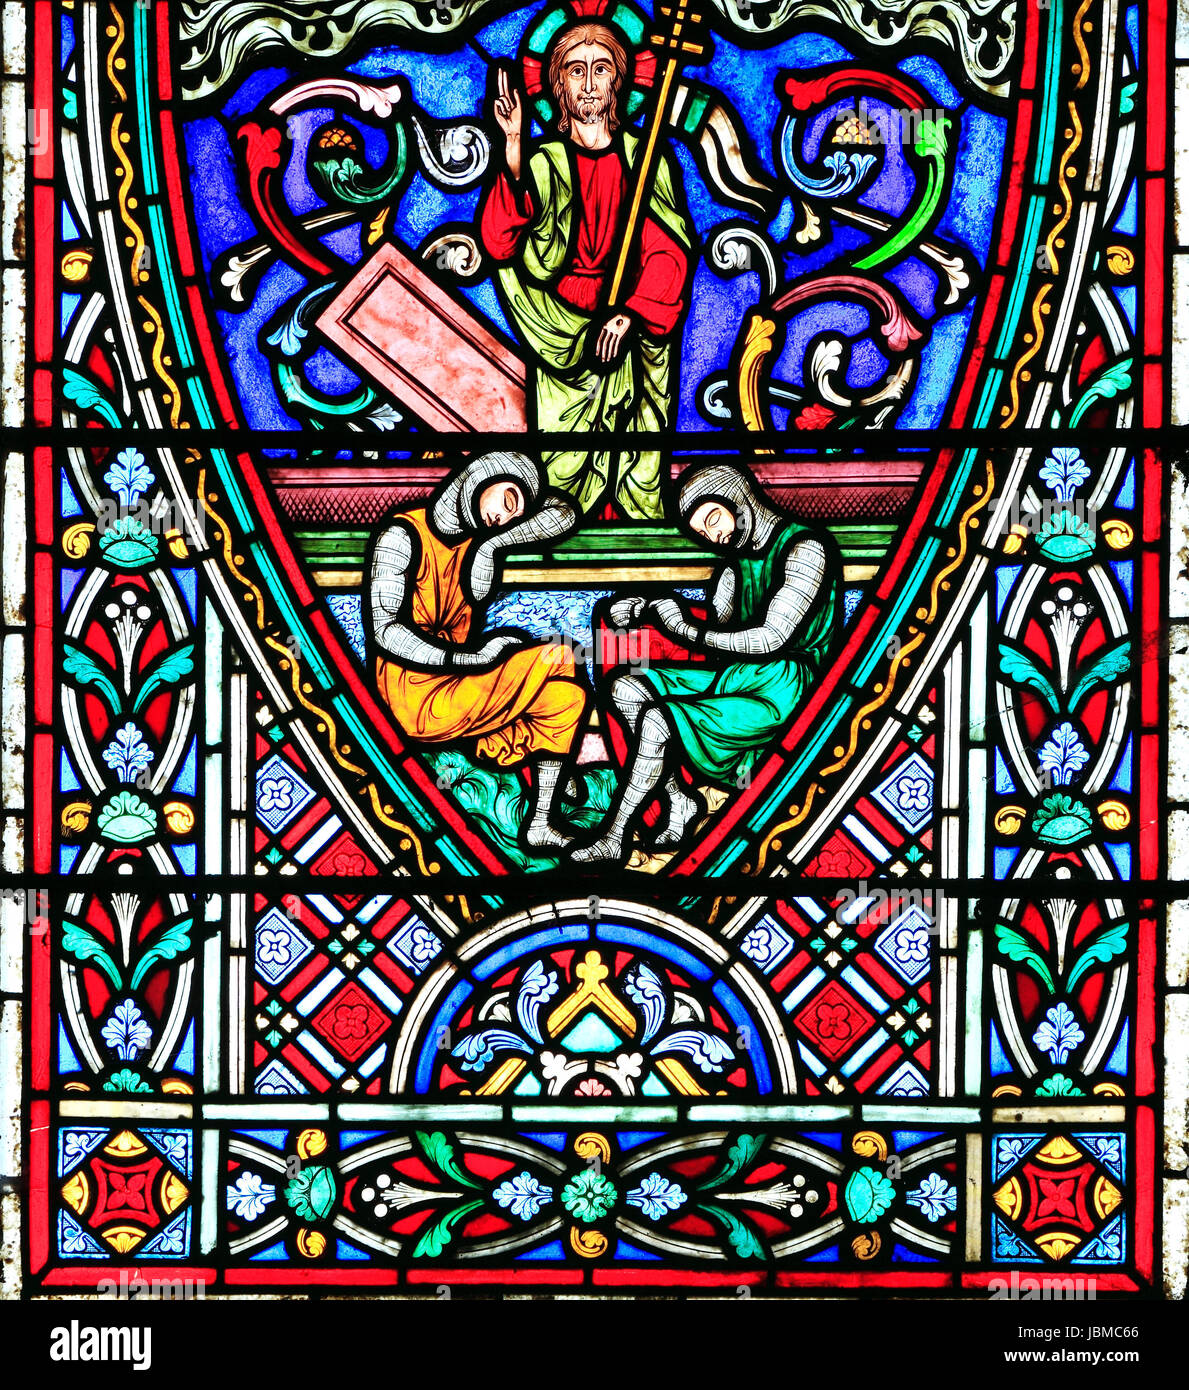 Resurrection Of Christ, while Roman guards sleep, stained glass window by Didron of Paris, 1860, Story of Easter, - Stock Image